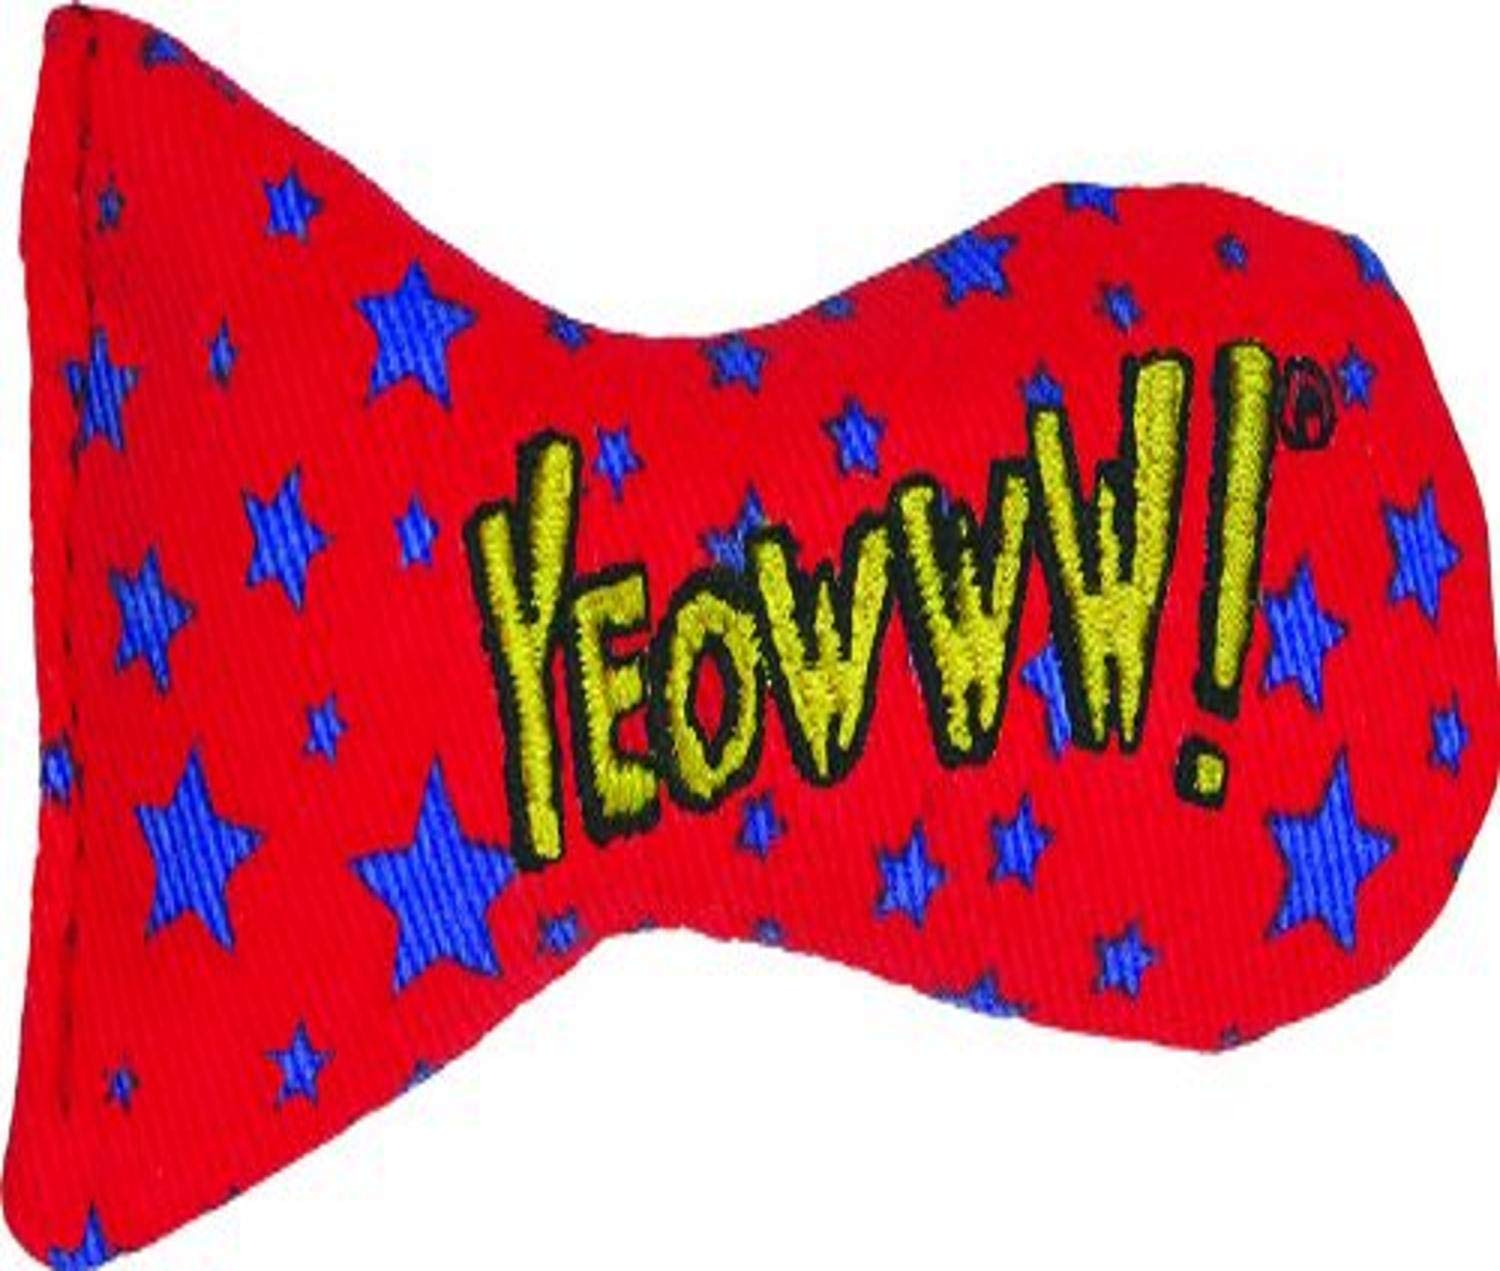 YEOWWW Stinkies Stars Cat Toy, red with blue stars